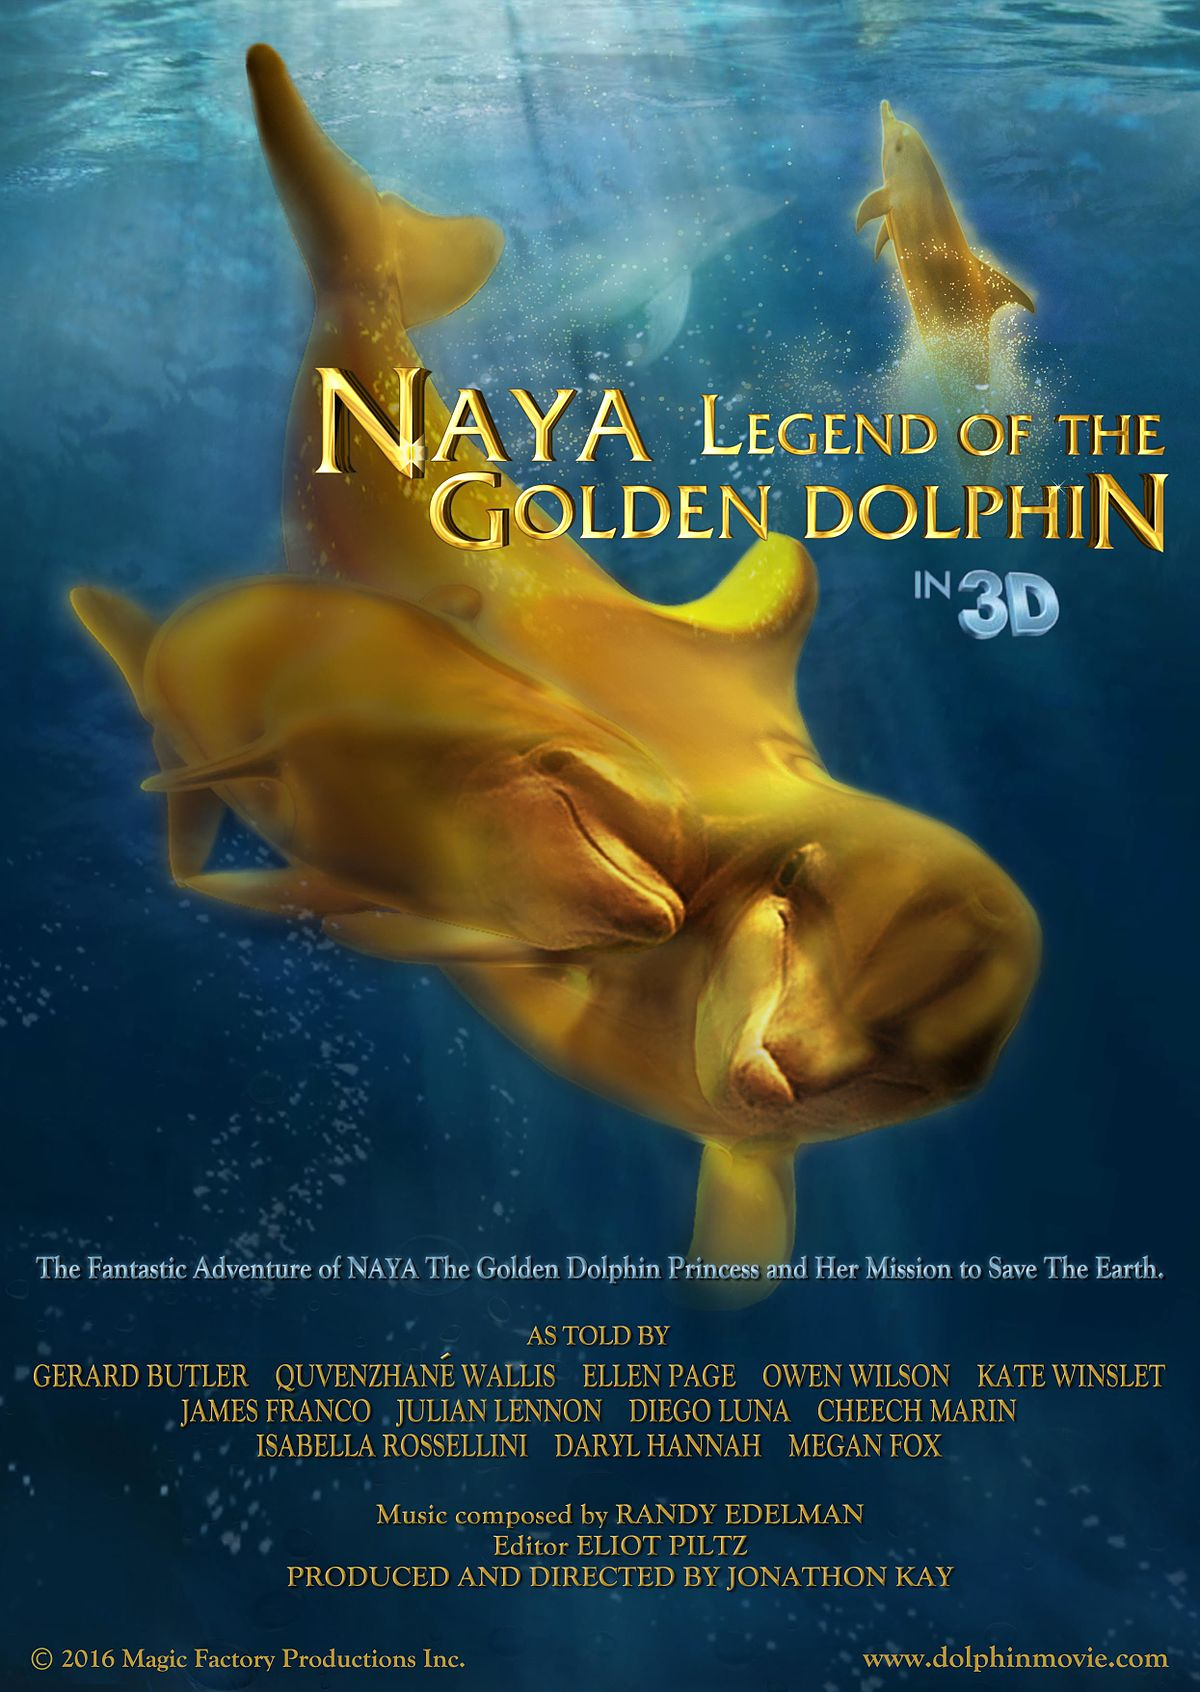 Naya Legend of the Golden Dolphins - Wikipedia